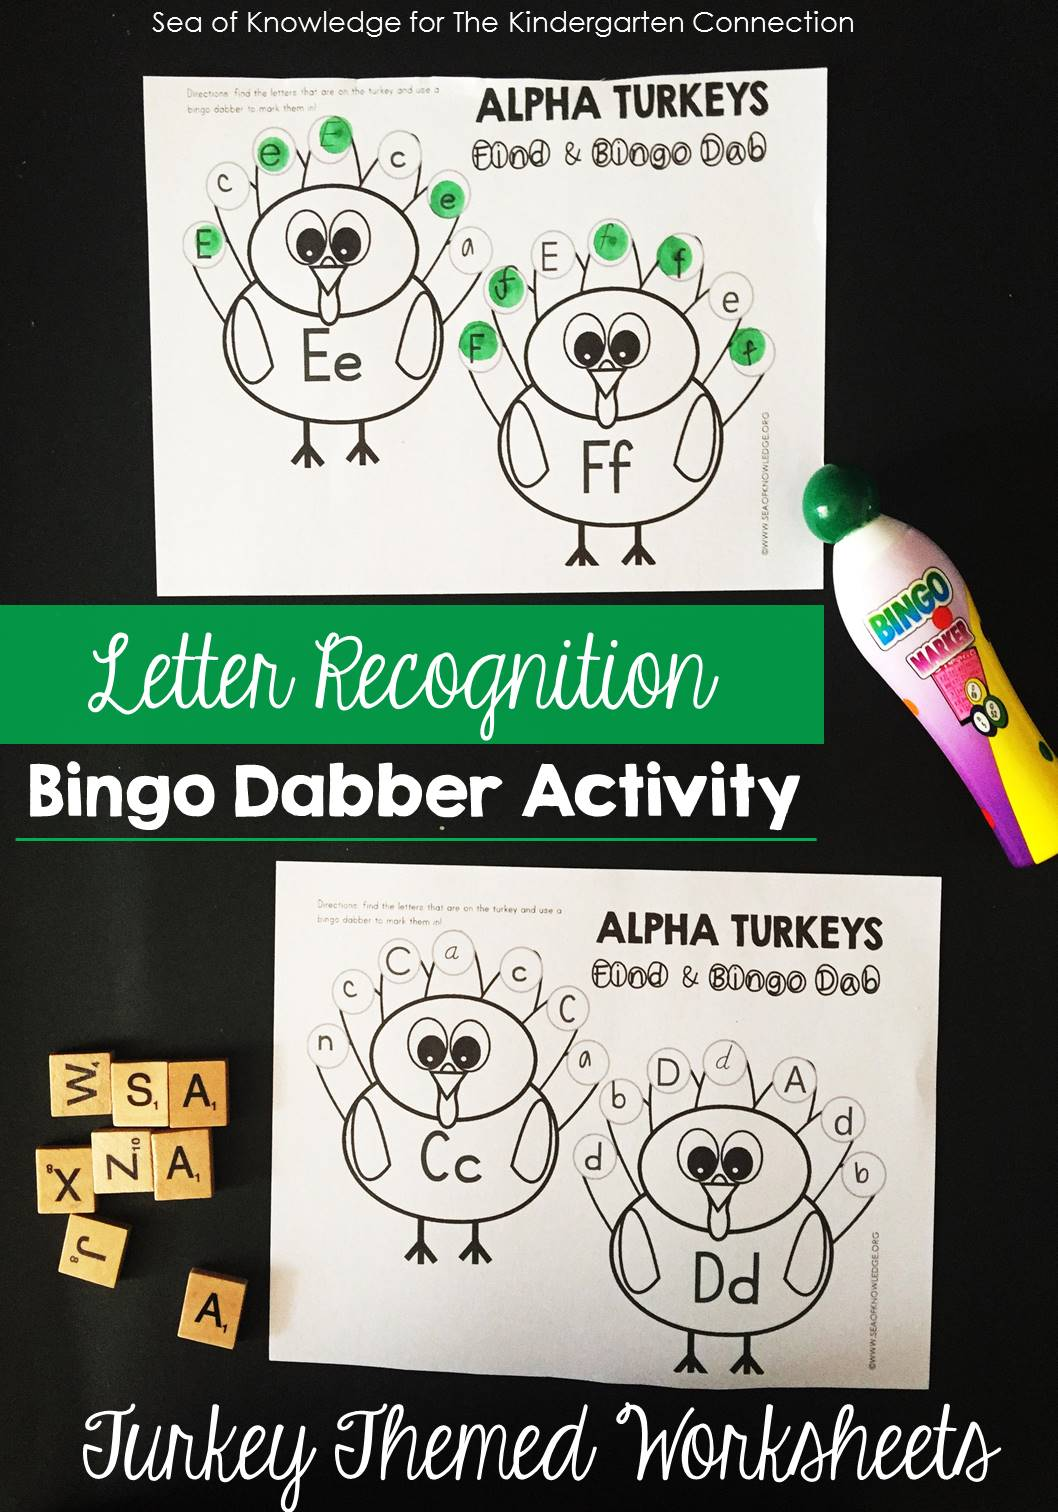 Turkey Letter Recognition Activity - The Kindergarten Connection